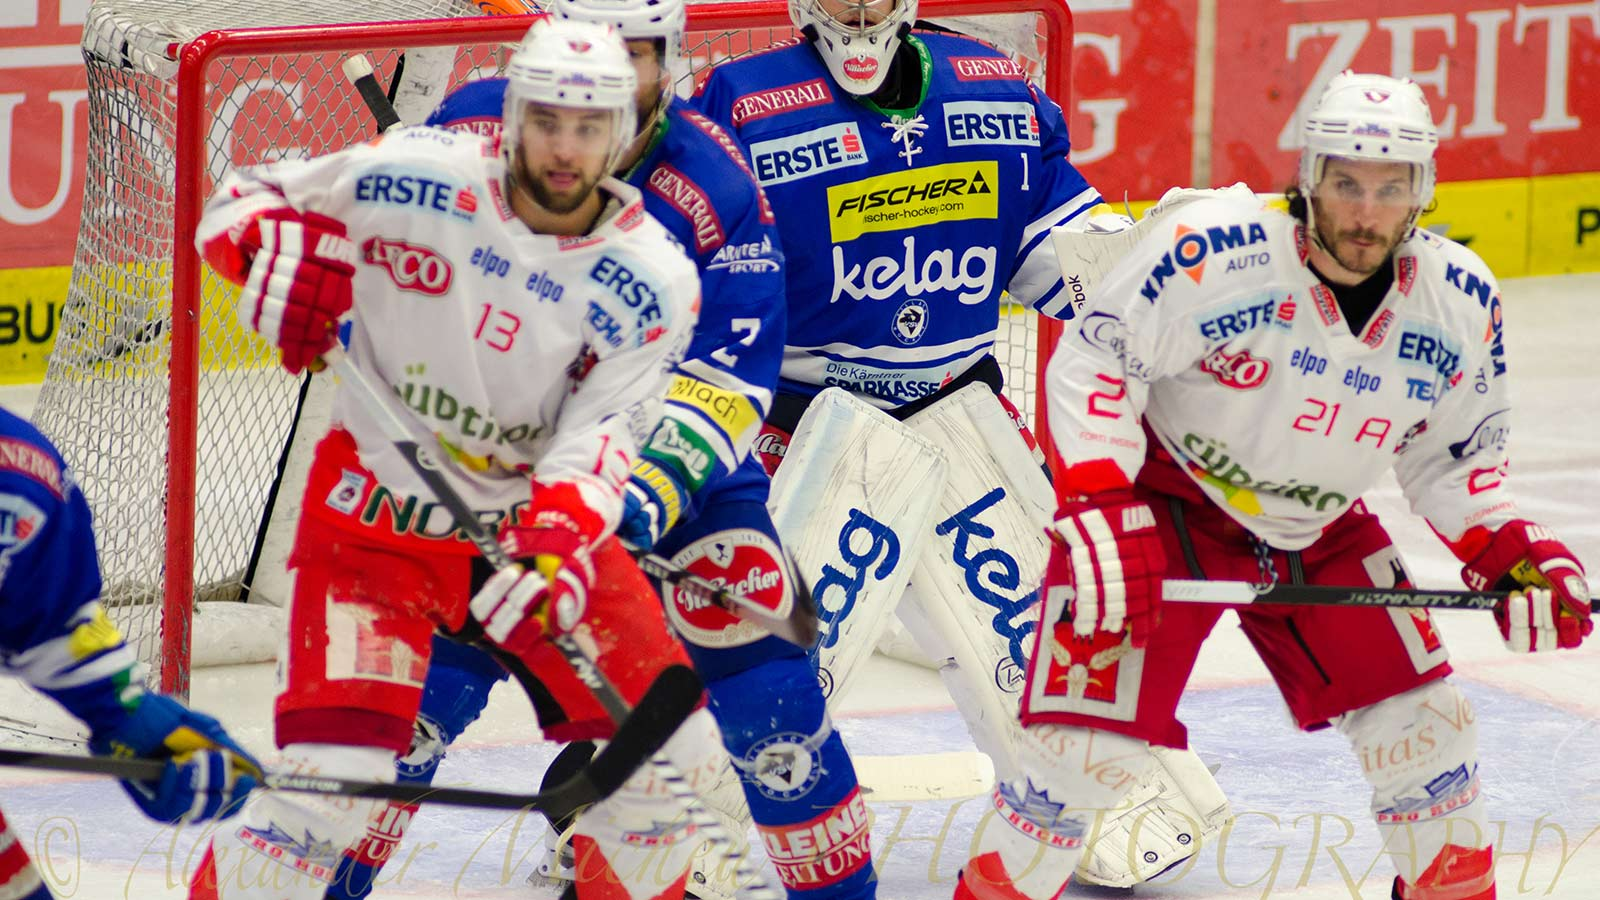 Hcb Ice hockey Four Points Bolzano